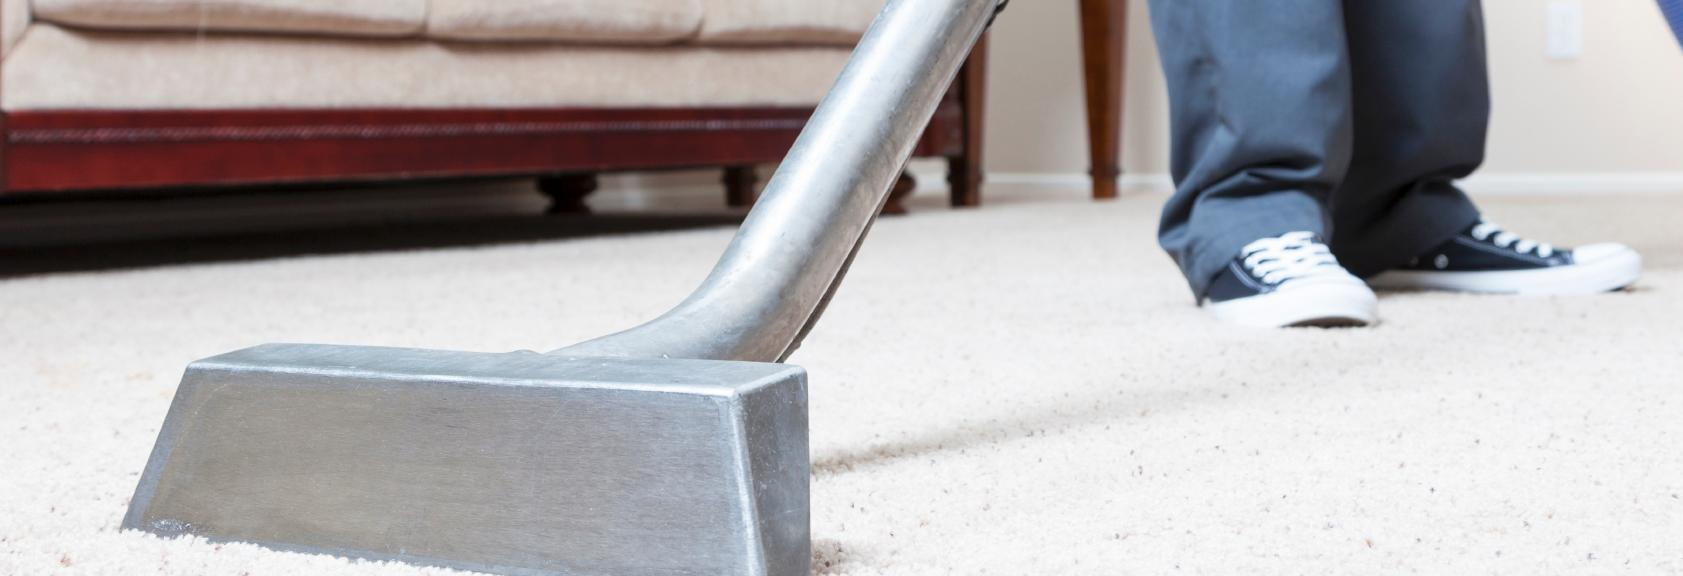 7 Pillars Carpet and Upholstery Cleaning Louisville KY